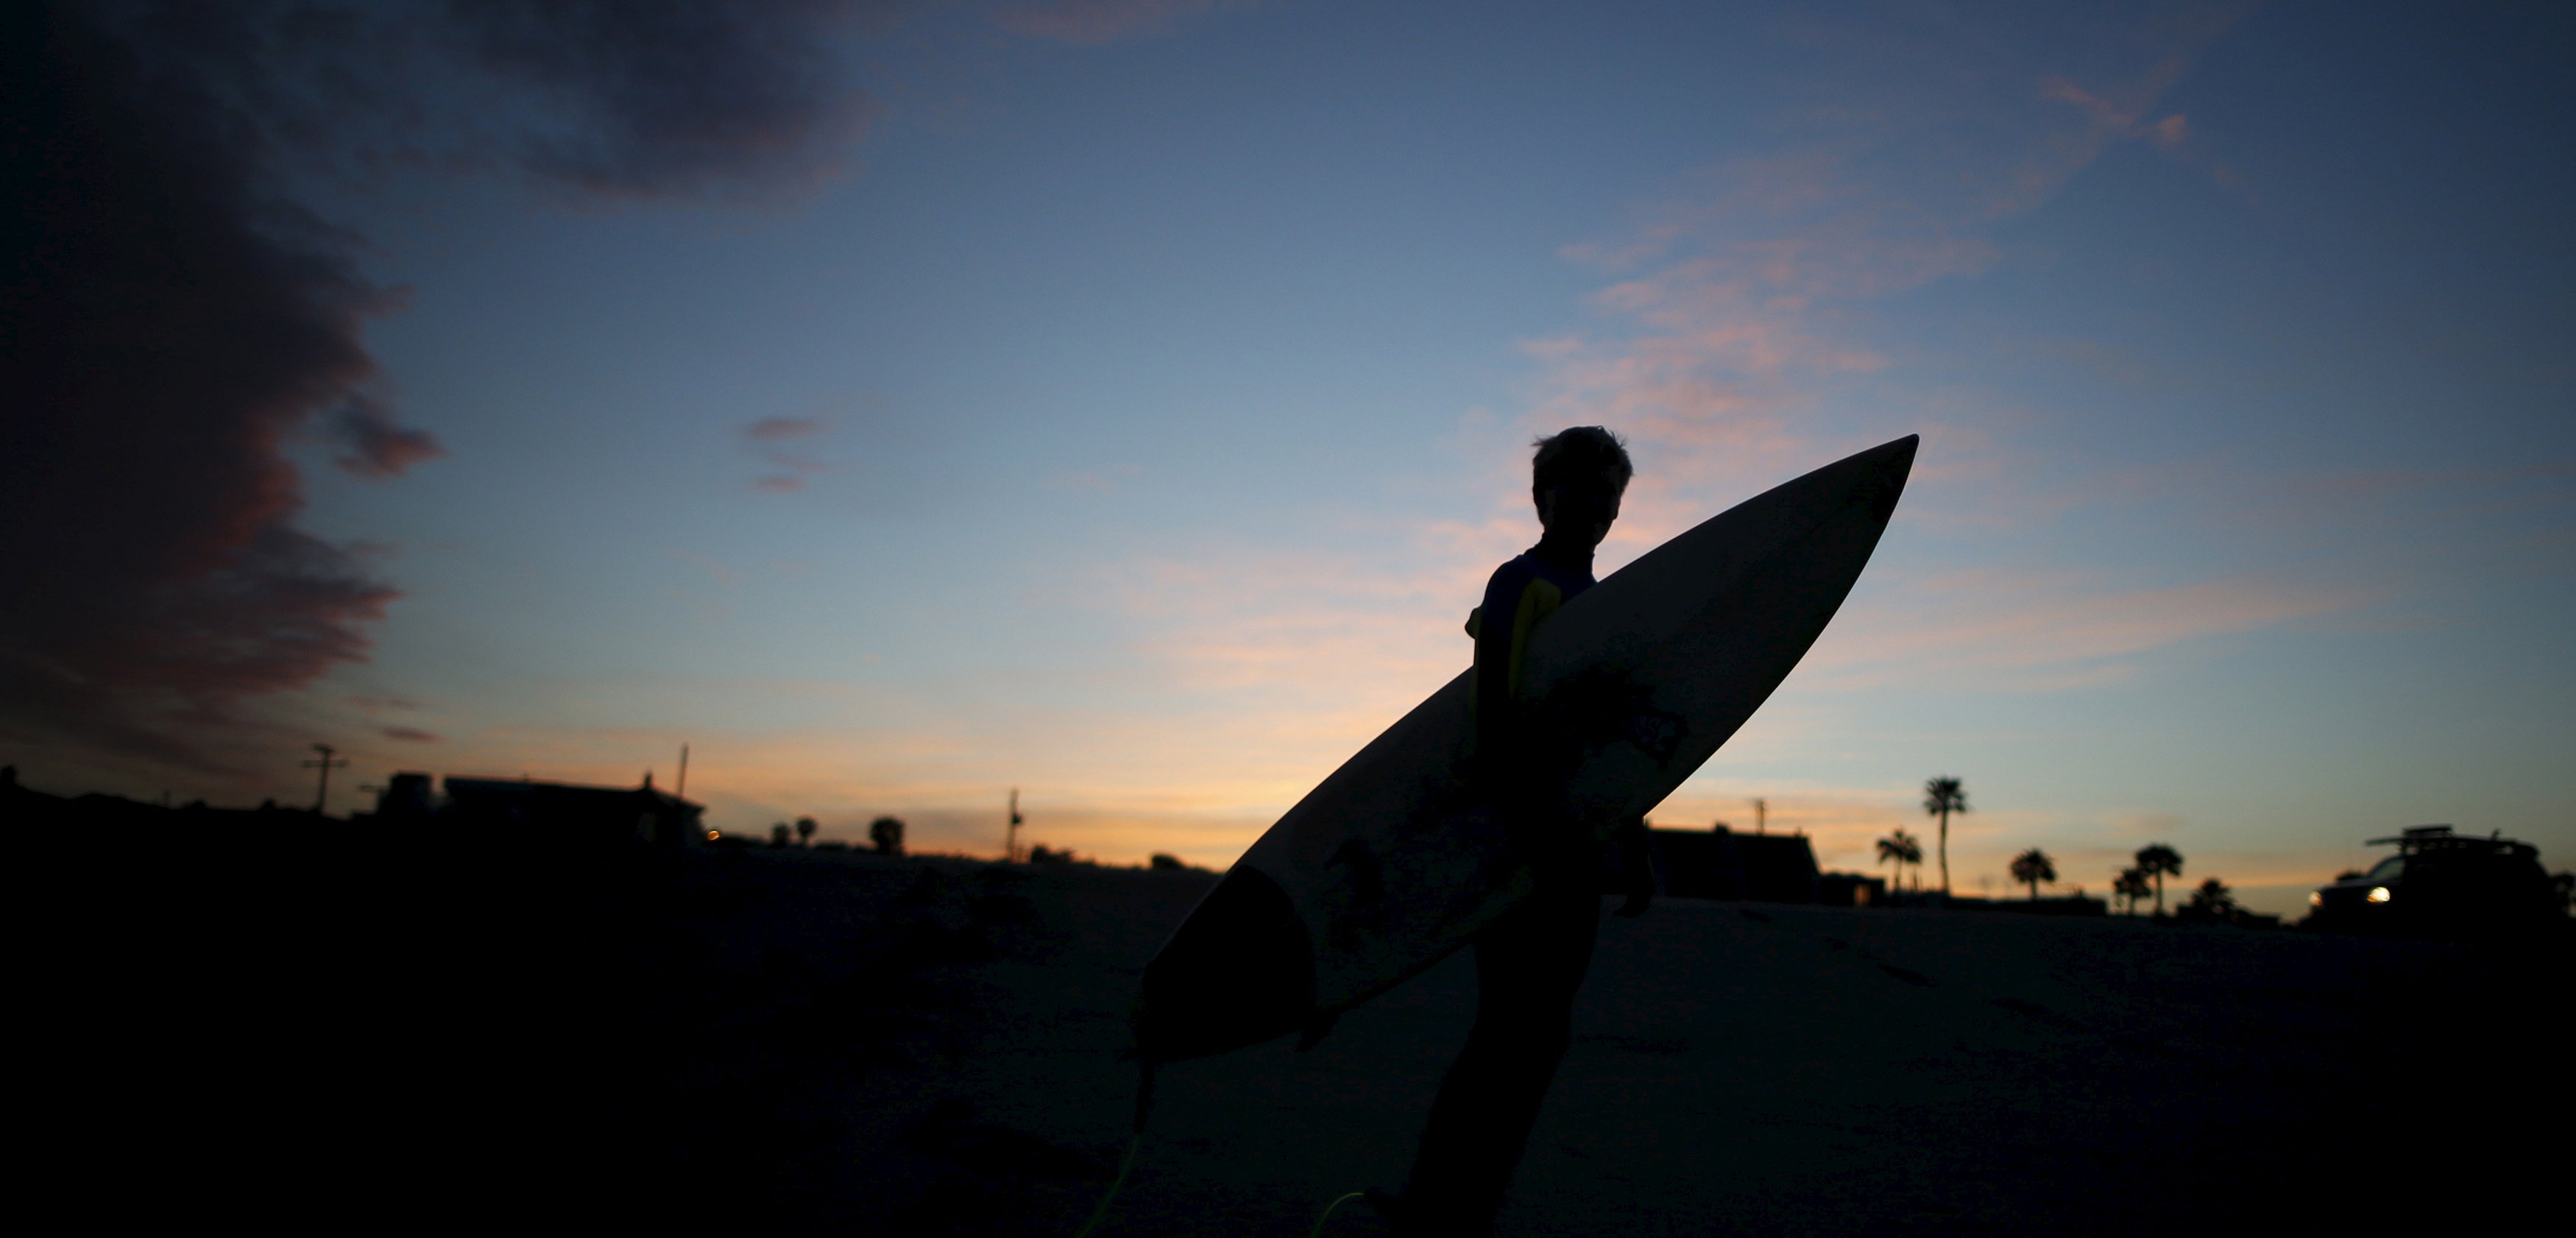 A 13-year-old surfer in California. Photo by Lucy Nicholson/Reuters/Corbis